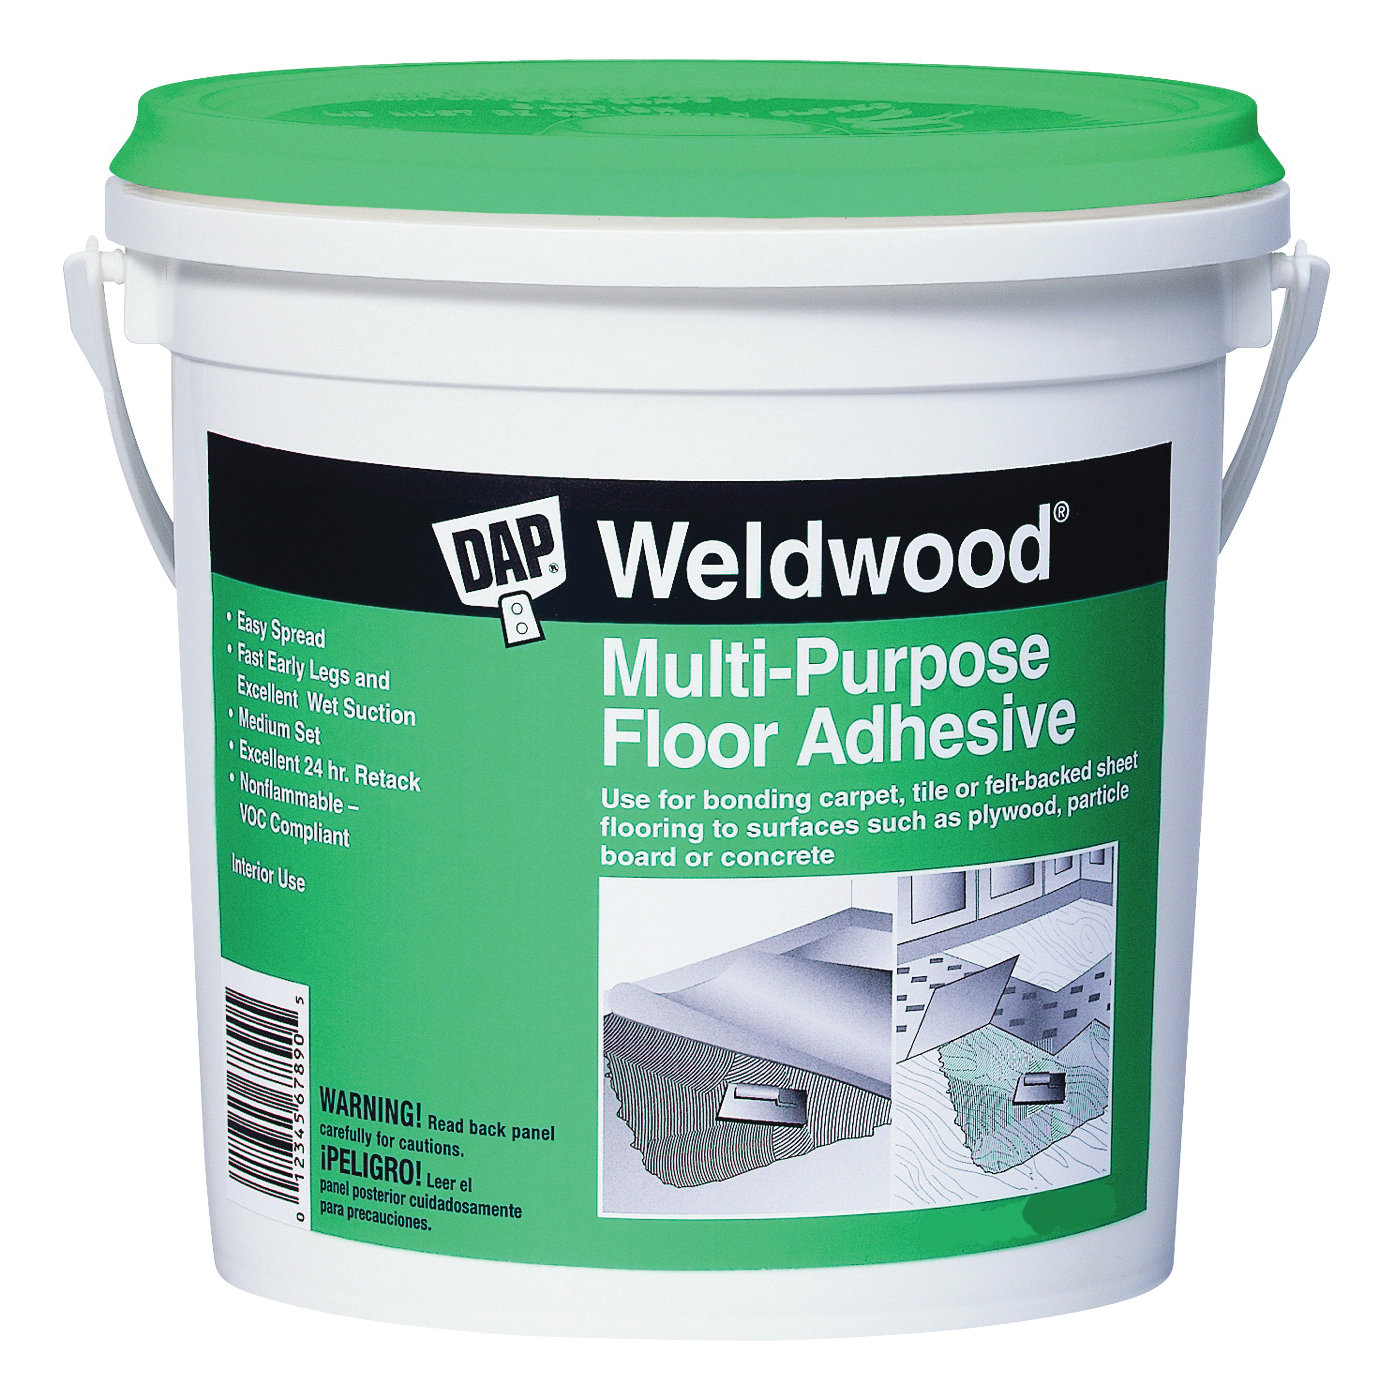 Picture of DAP Weldwood 00141 Floor Adhesive, Paste, Slight, Off-White, 1 qt Package, Pail